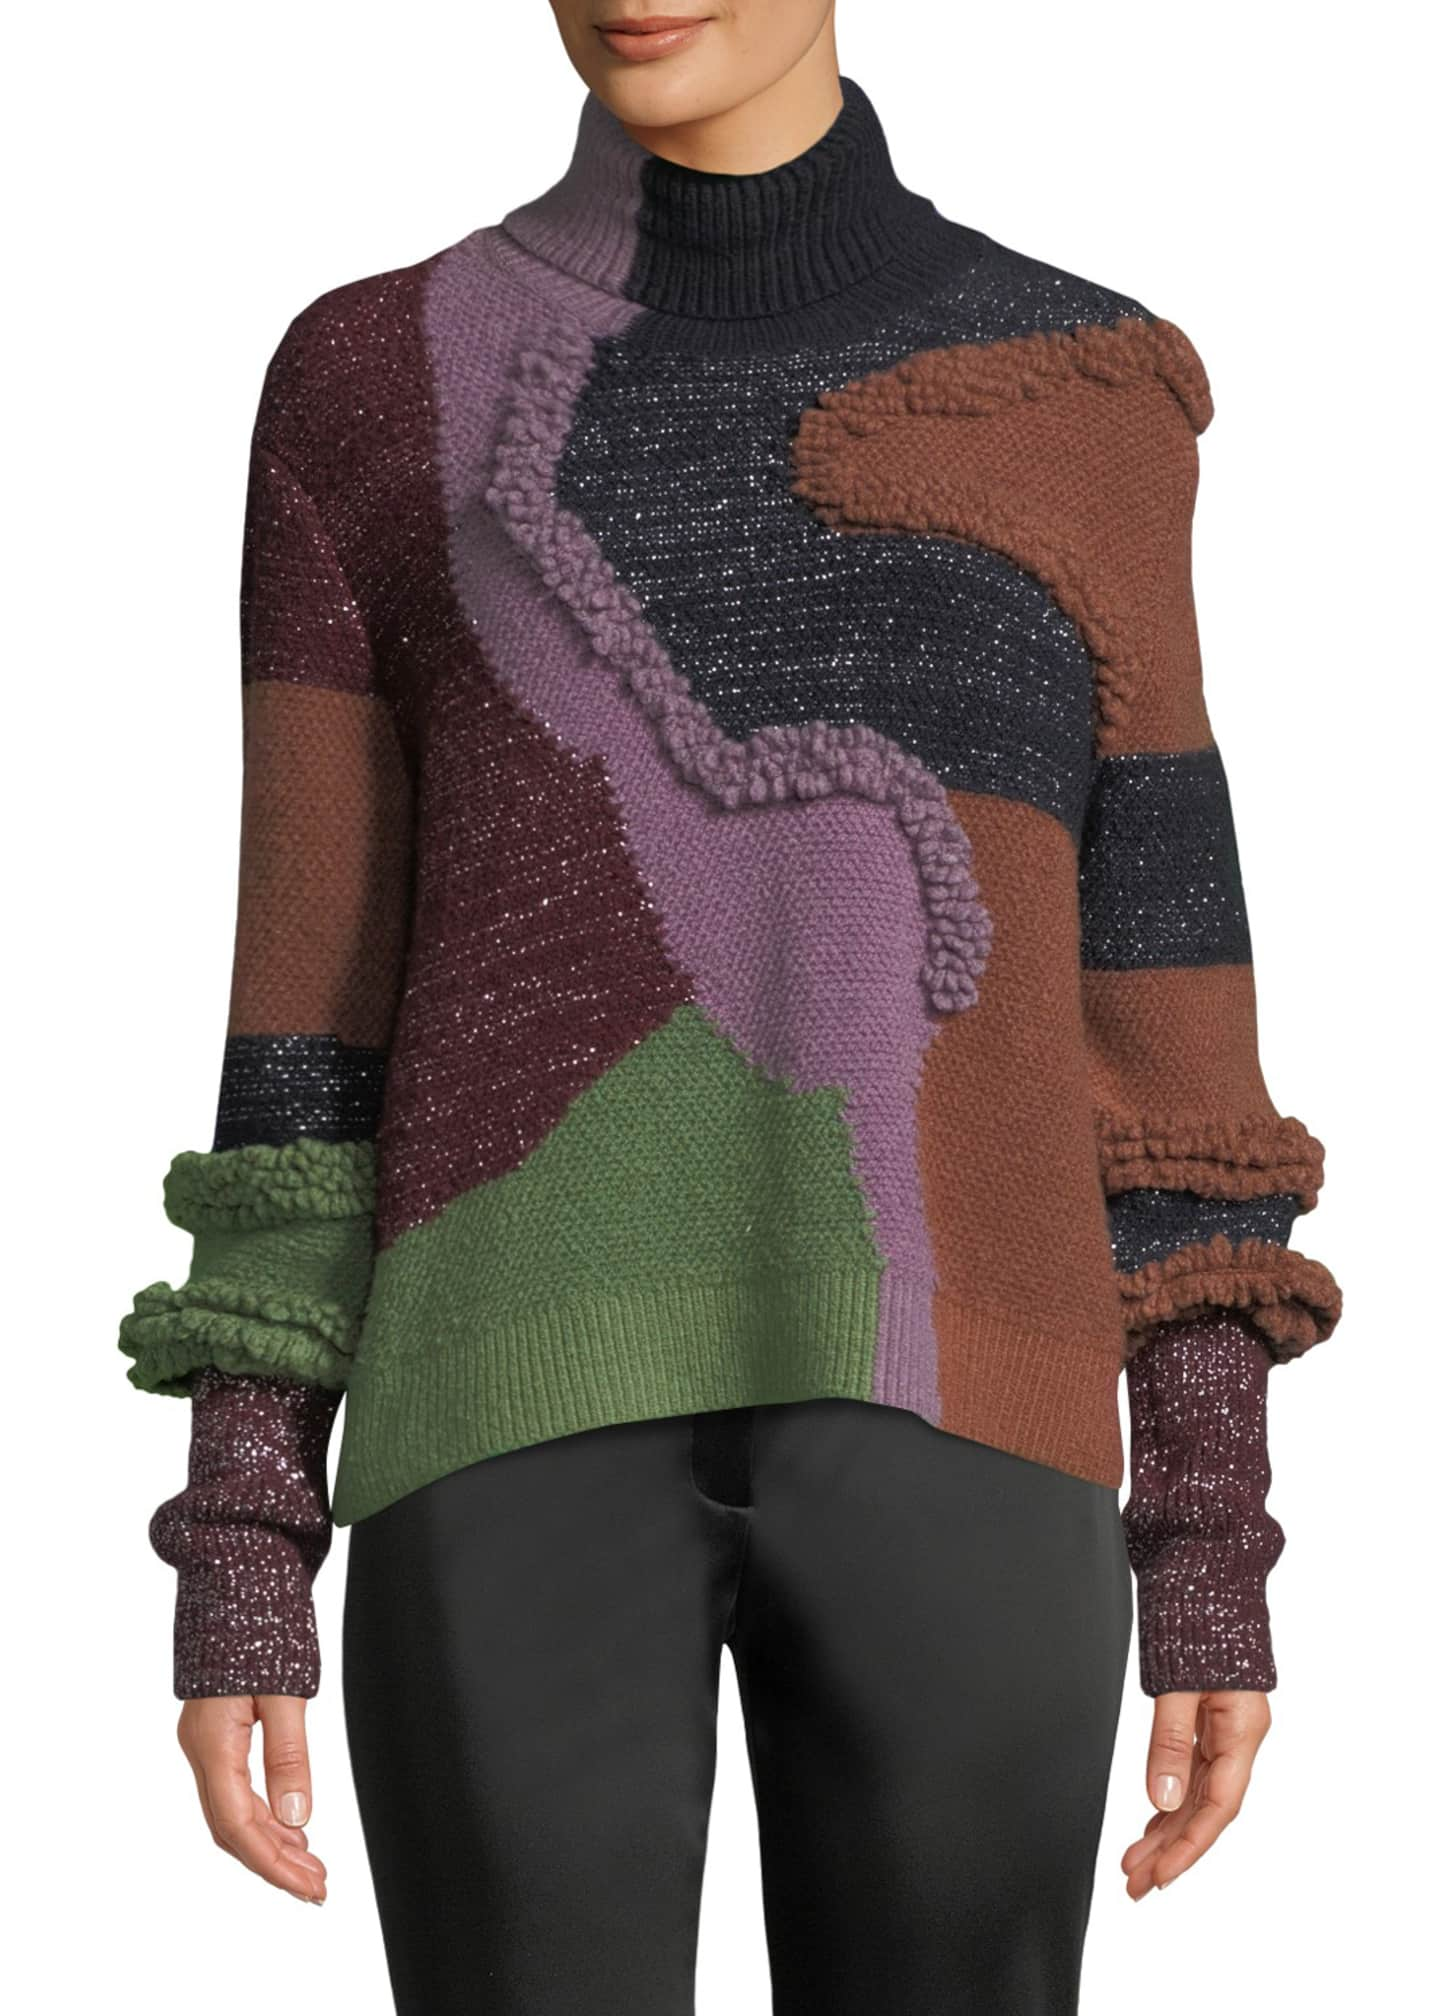 Peter Pilotto Turtleneck Patchwork Knit Pullover Sweater w/